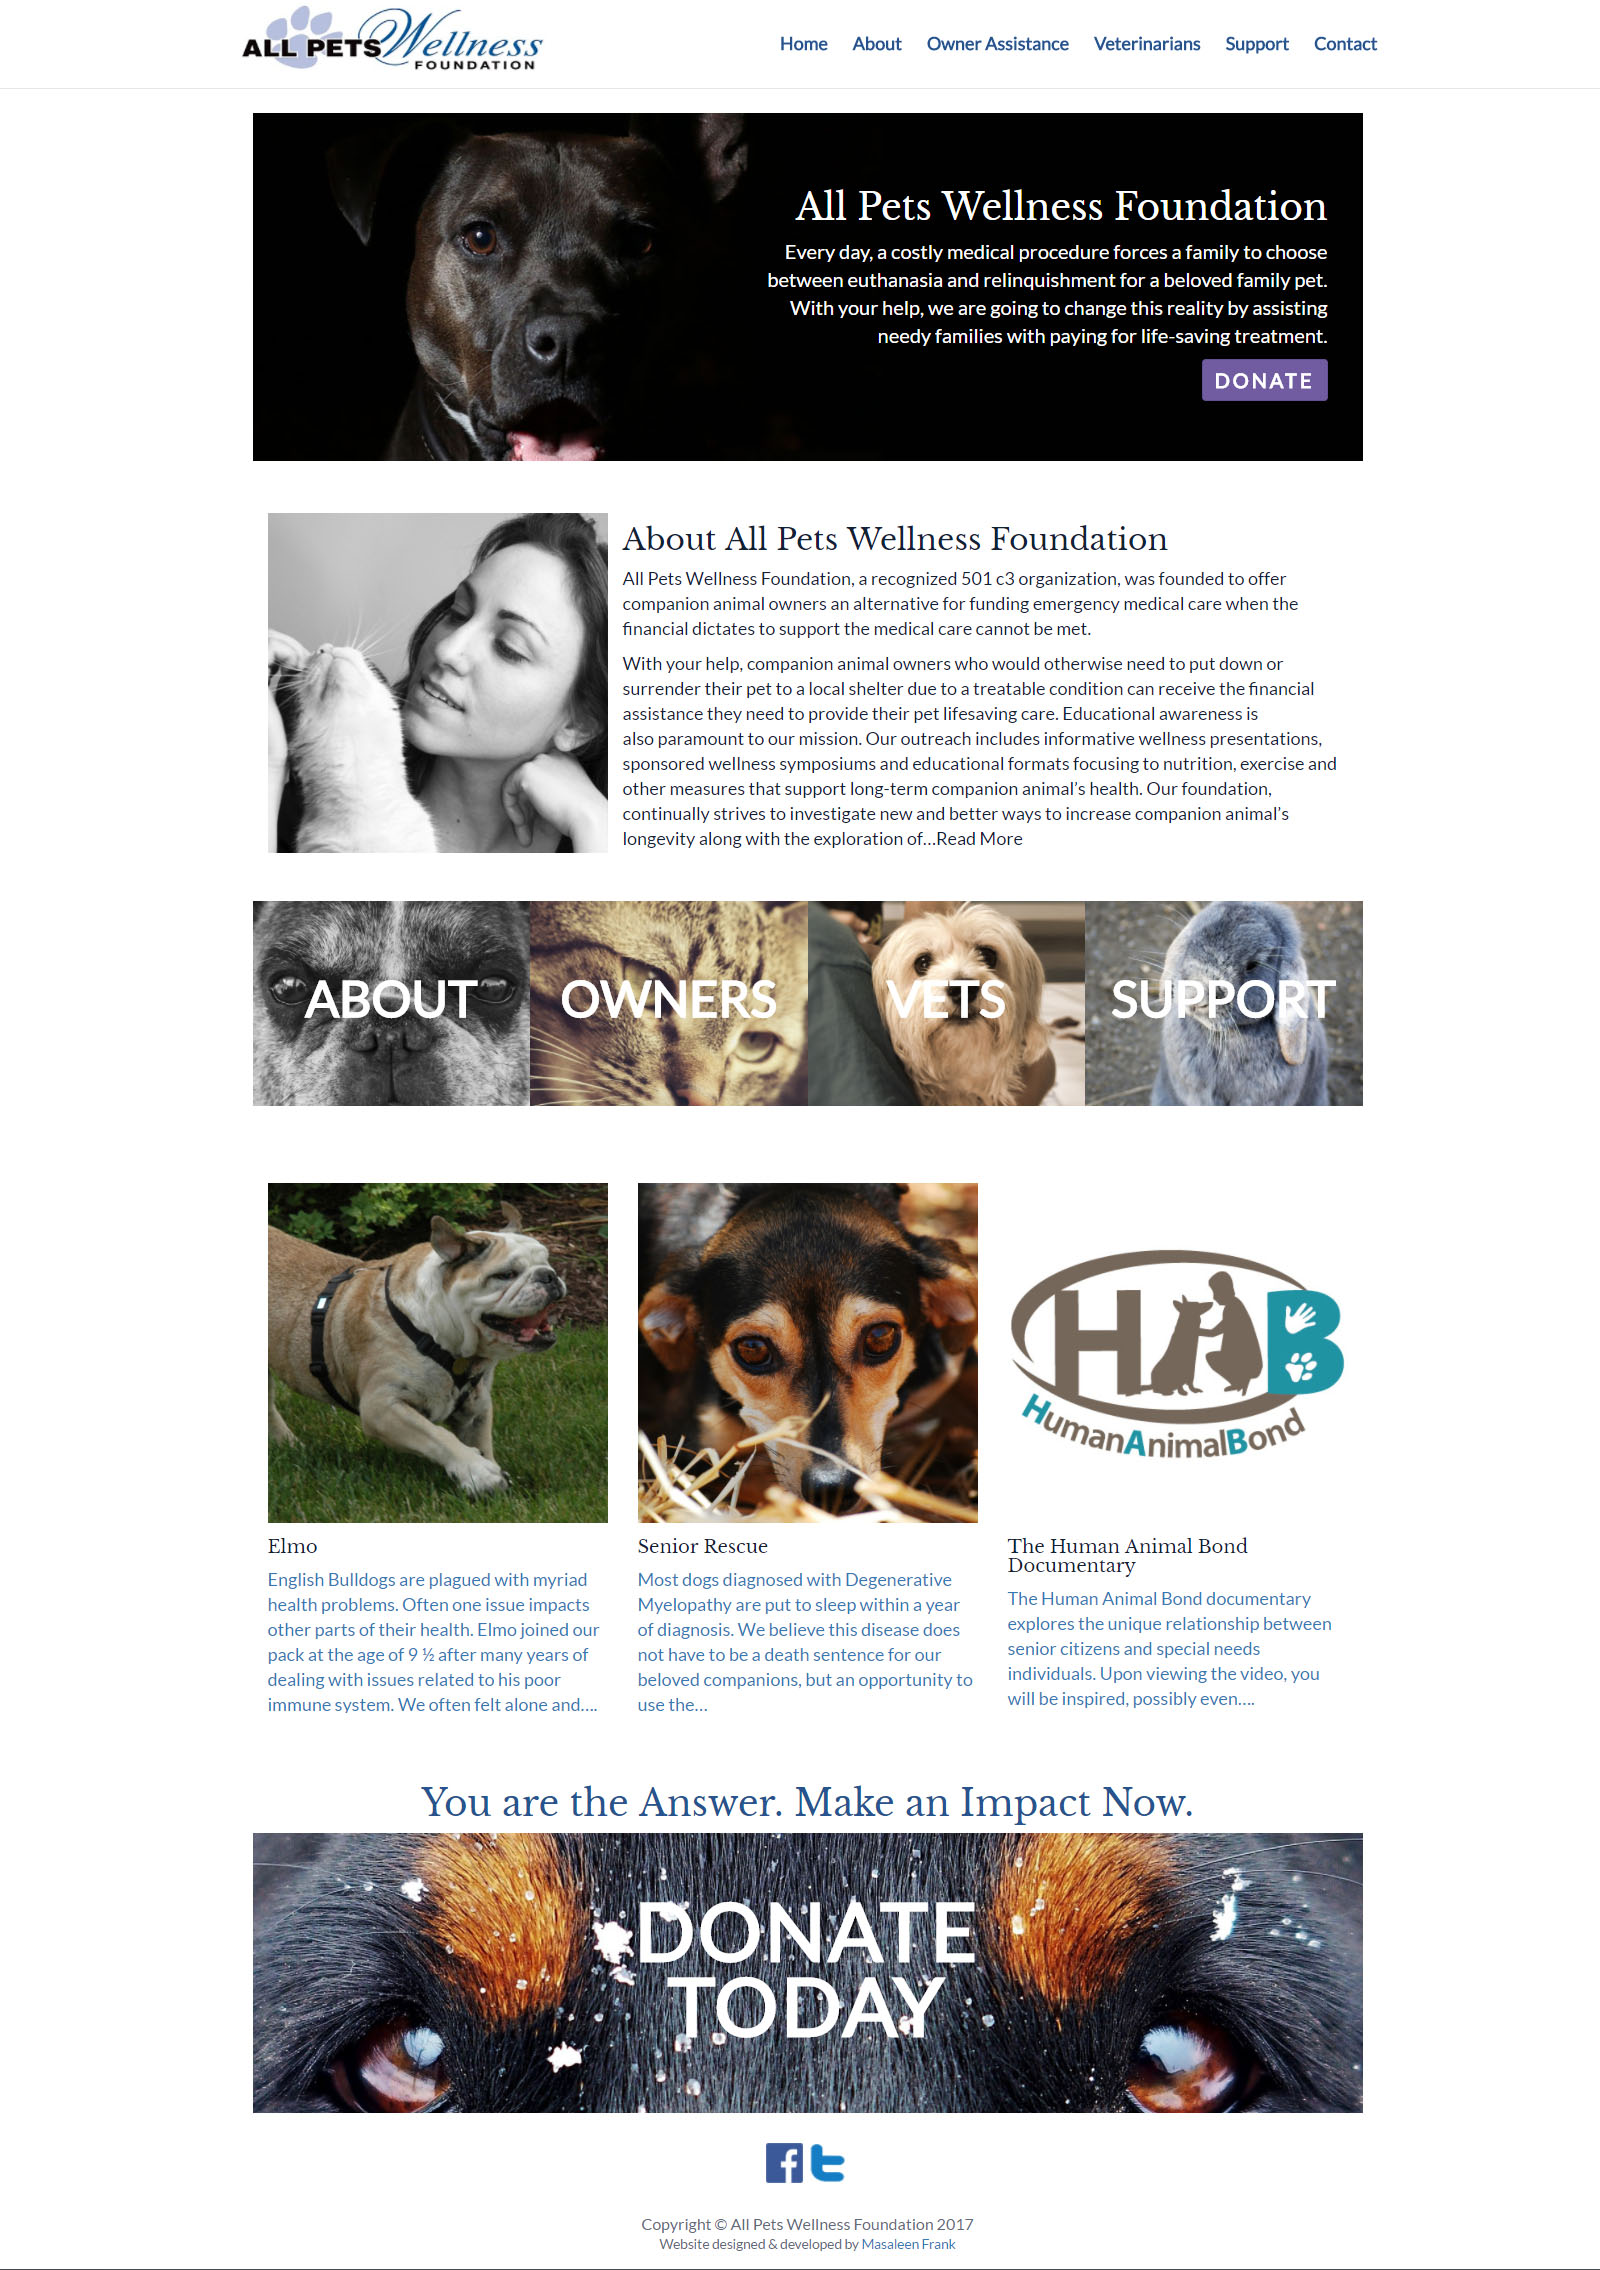 All Pets Wellness Foundation - Website Screenshot